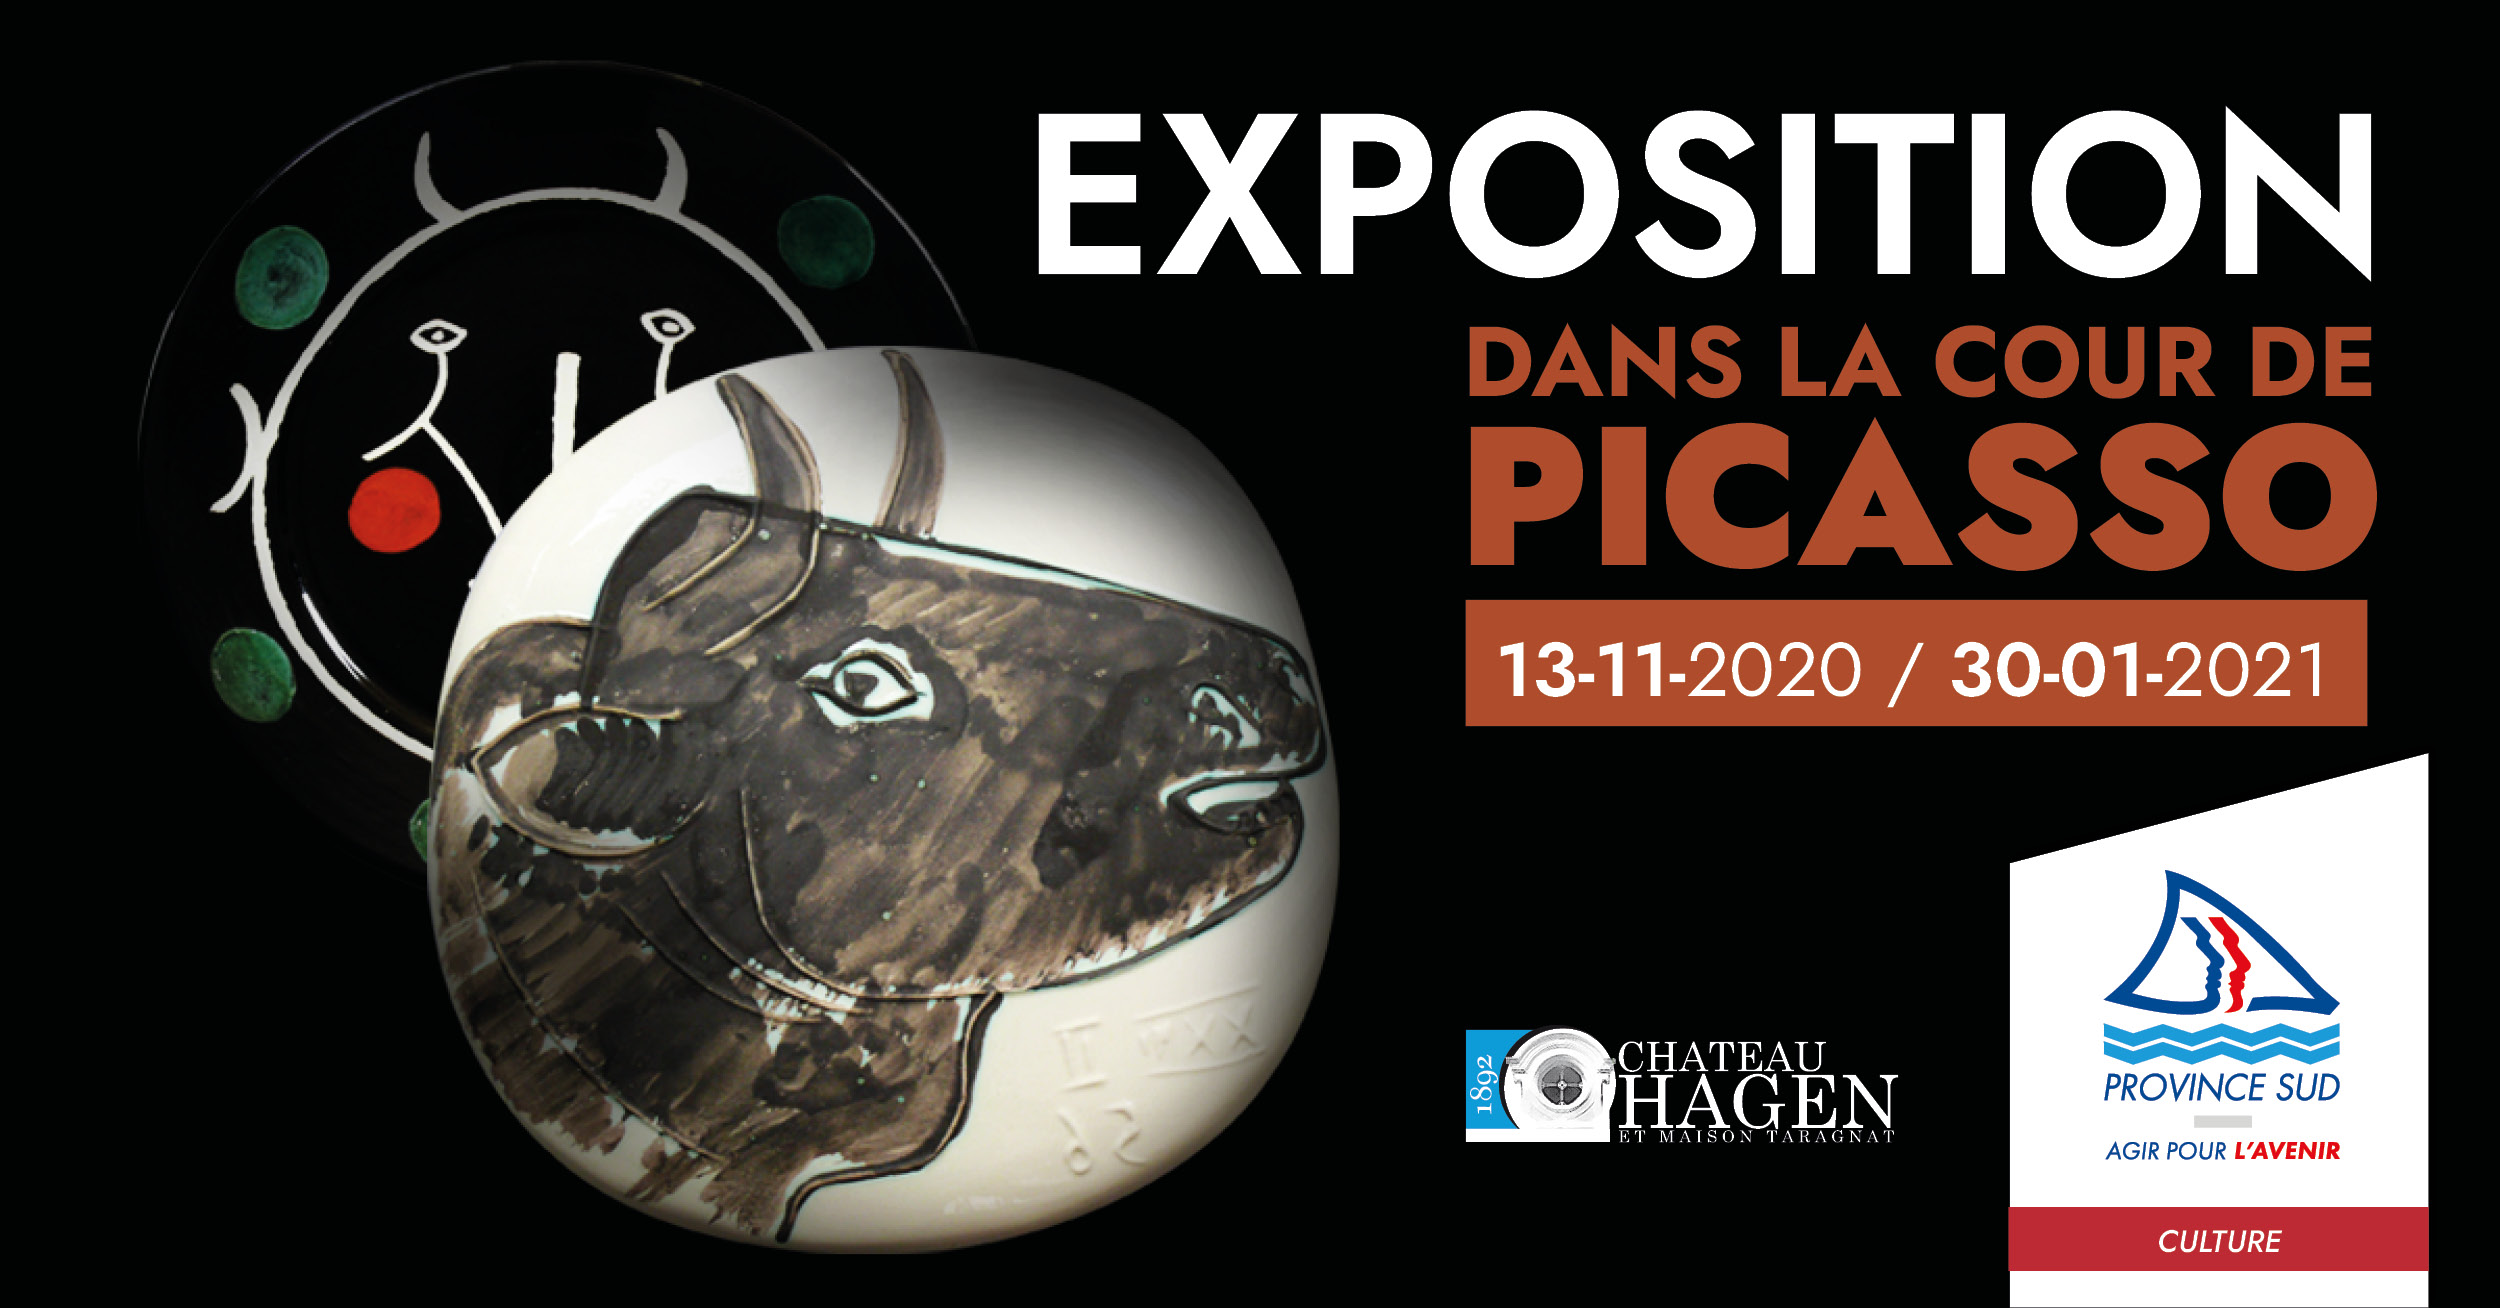 Expo picasso